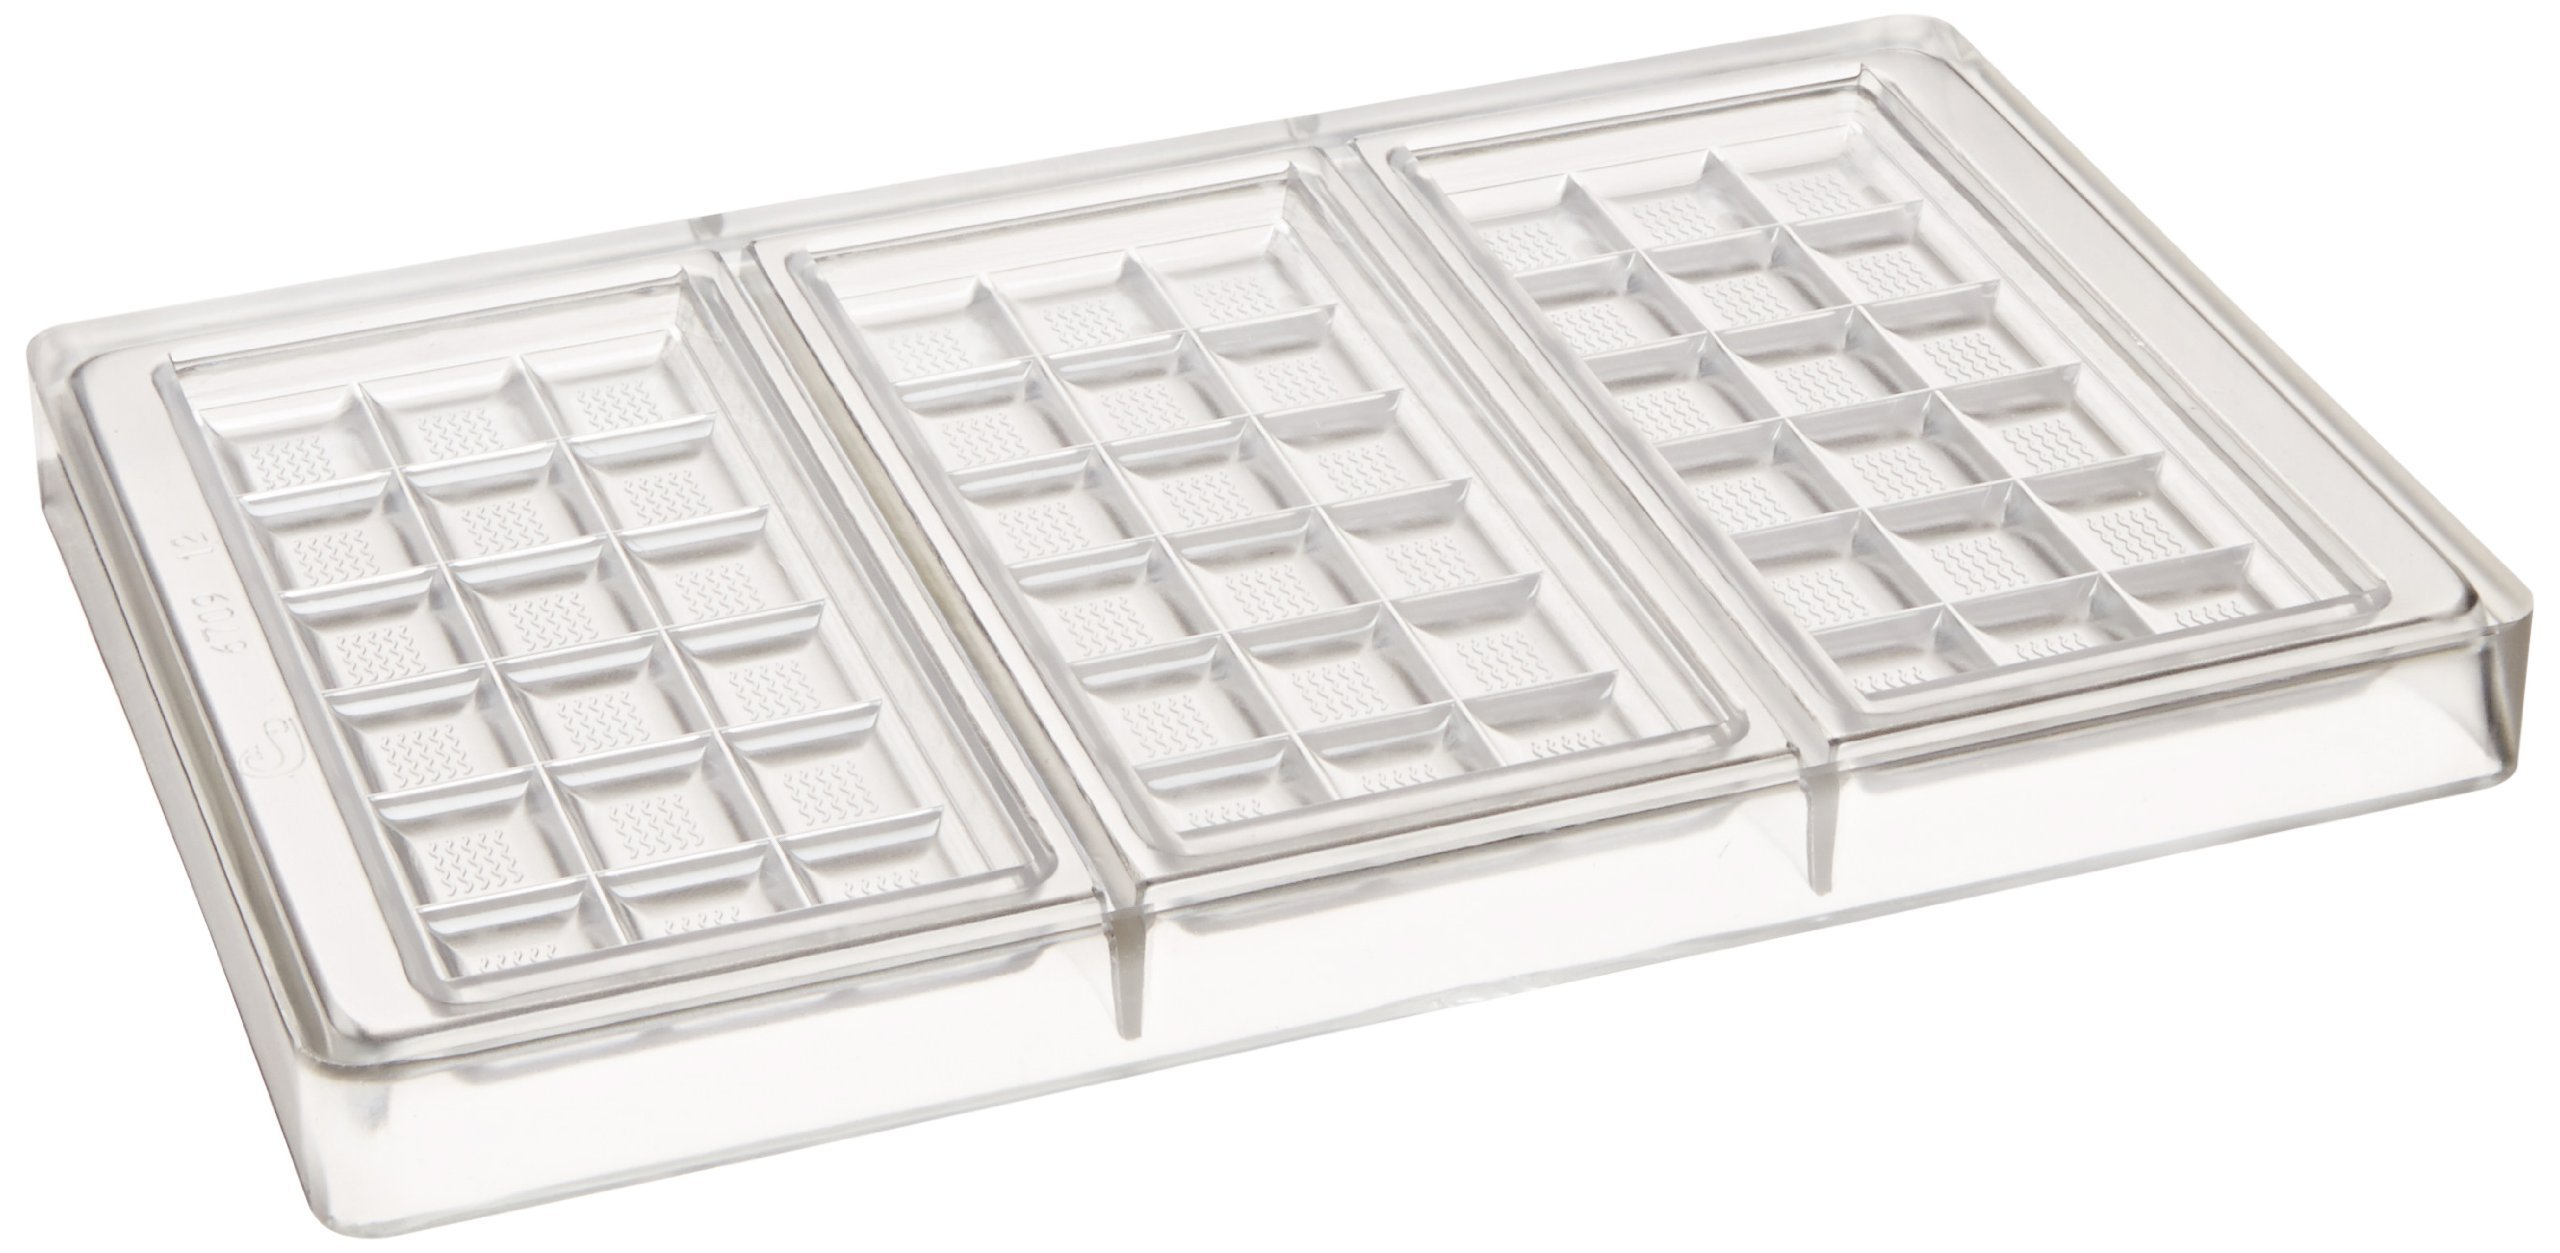 Matfer Bourgeat 380240 Poly Carbonate Chocolate Tablets Mold